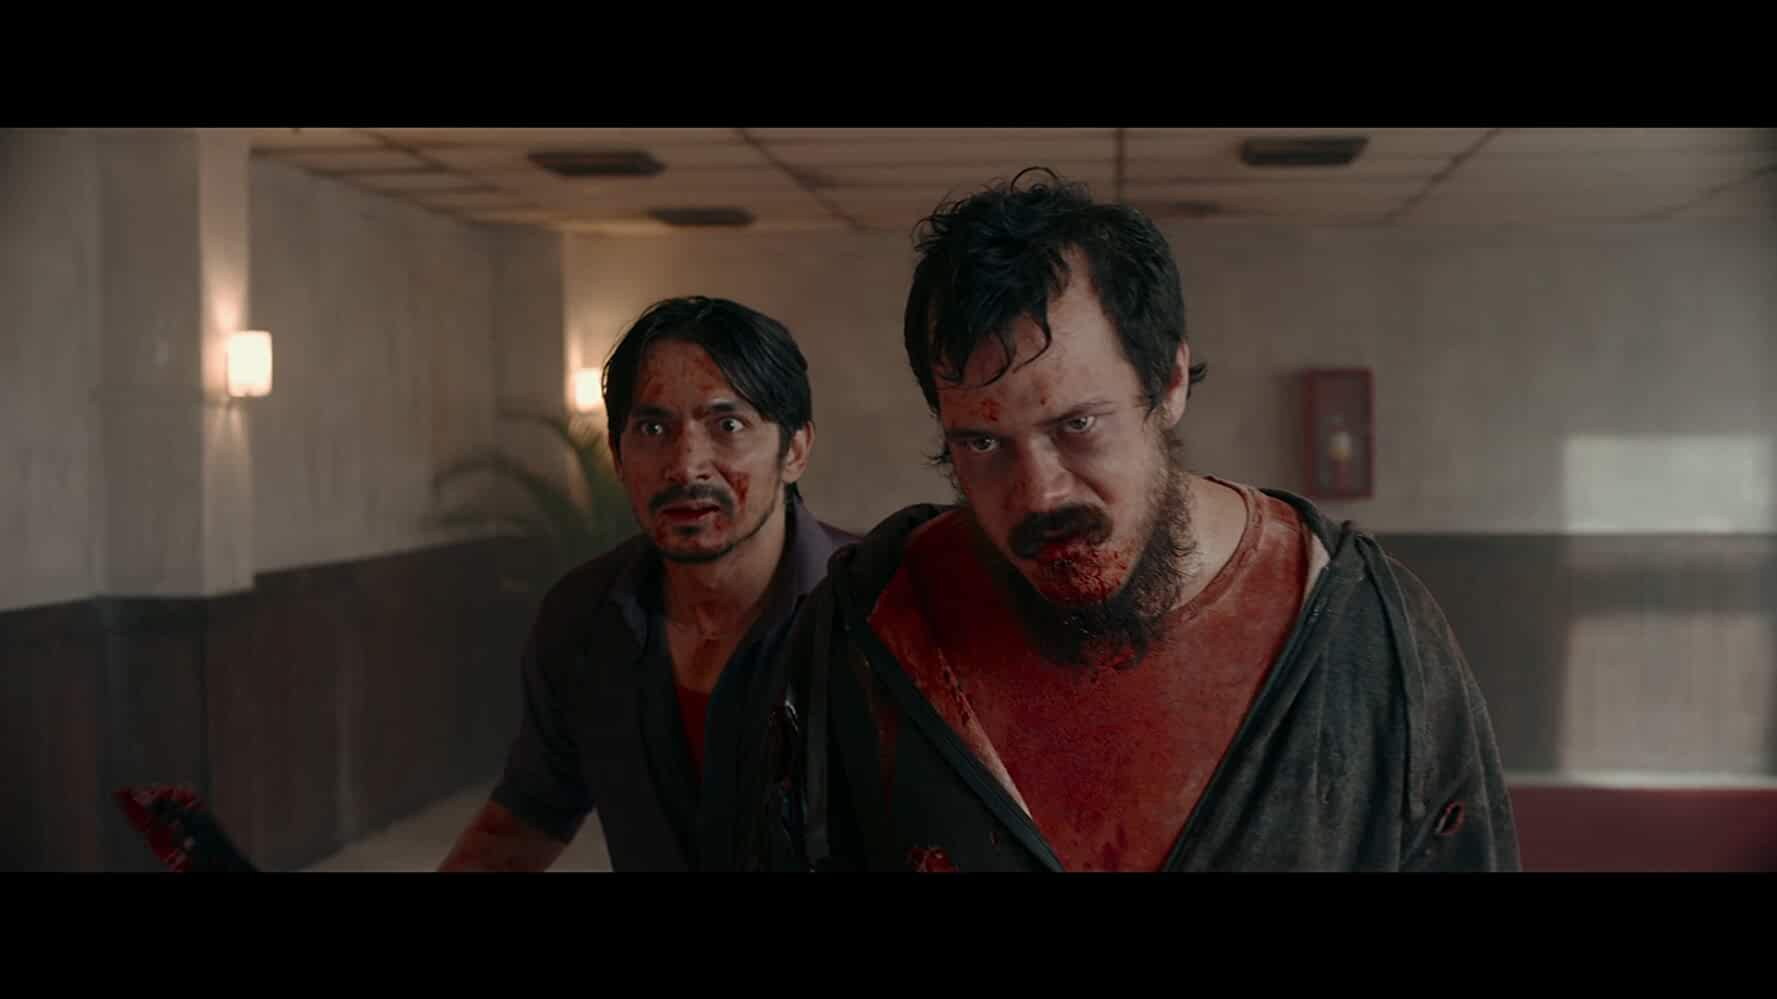 Abimana Aryasatya and Zack Lee in The Night Comes for Us (2018)